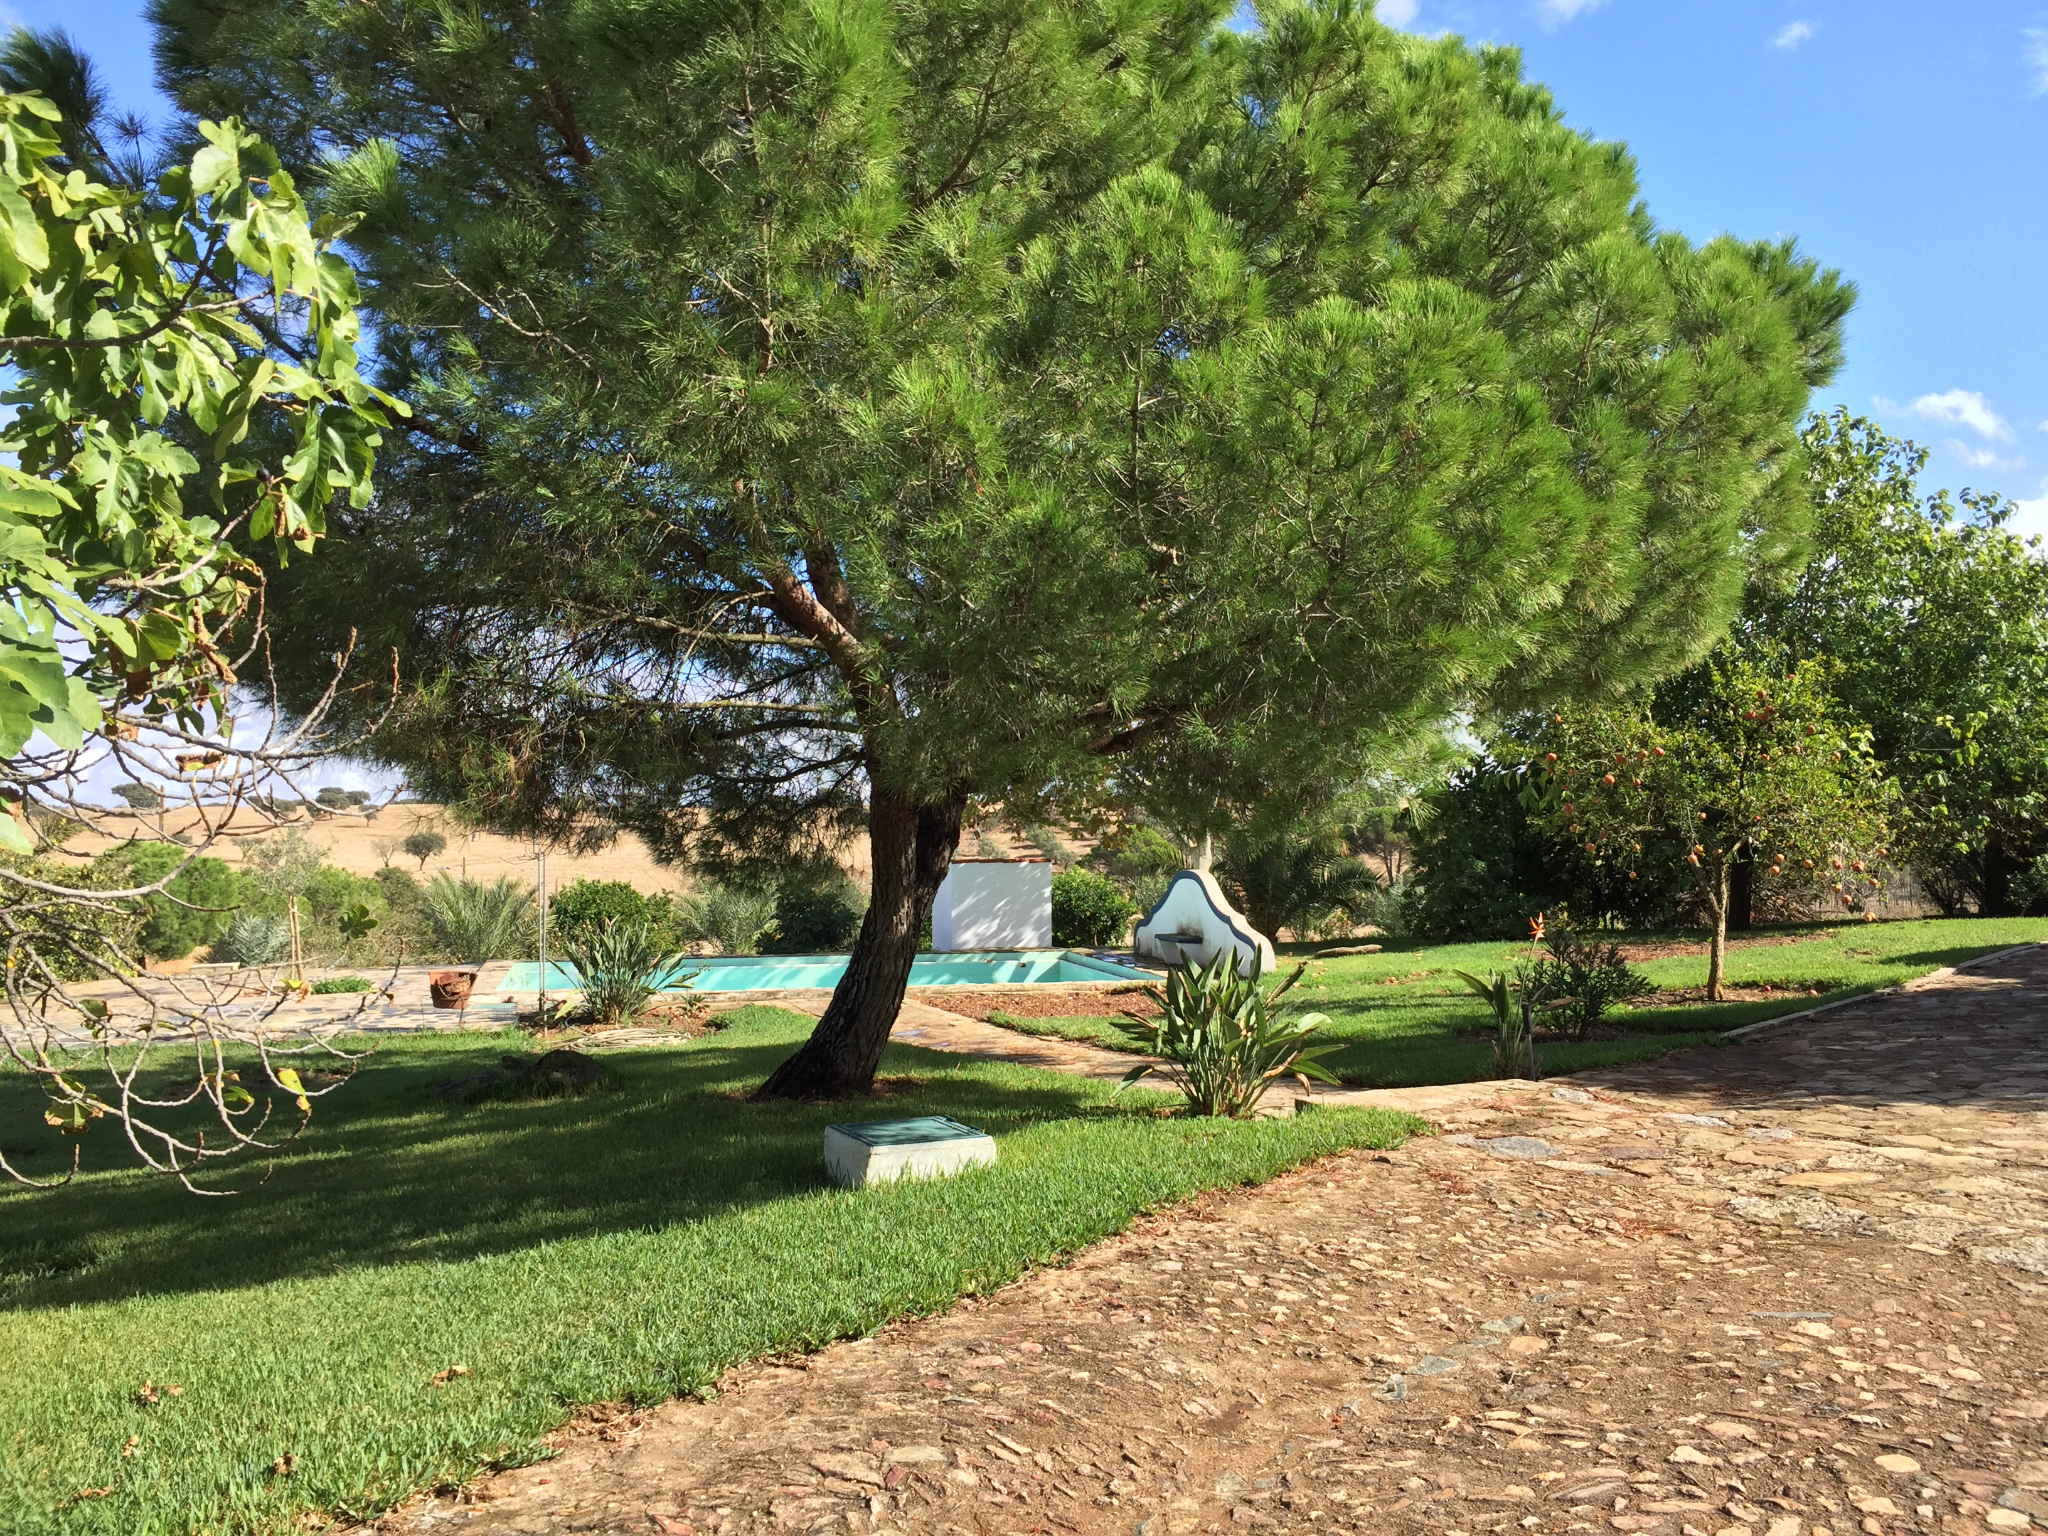 The pine trees of our garden and healthier and greener than ever!